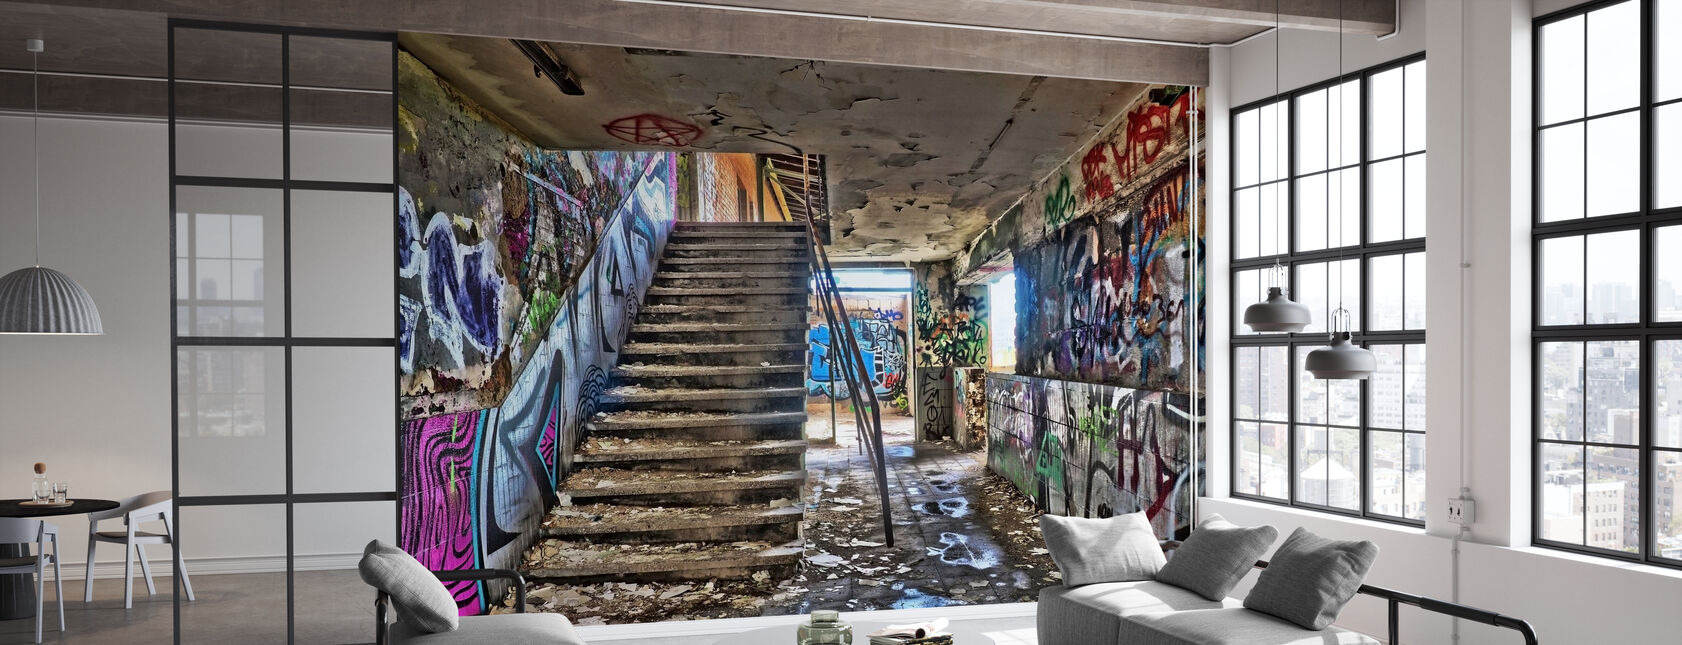 Abandoned Building Staircase - Wallpaper - Office